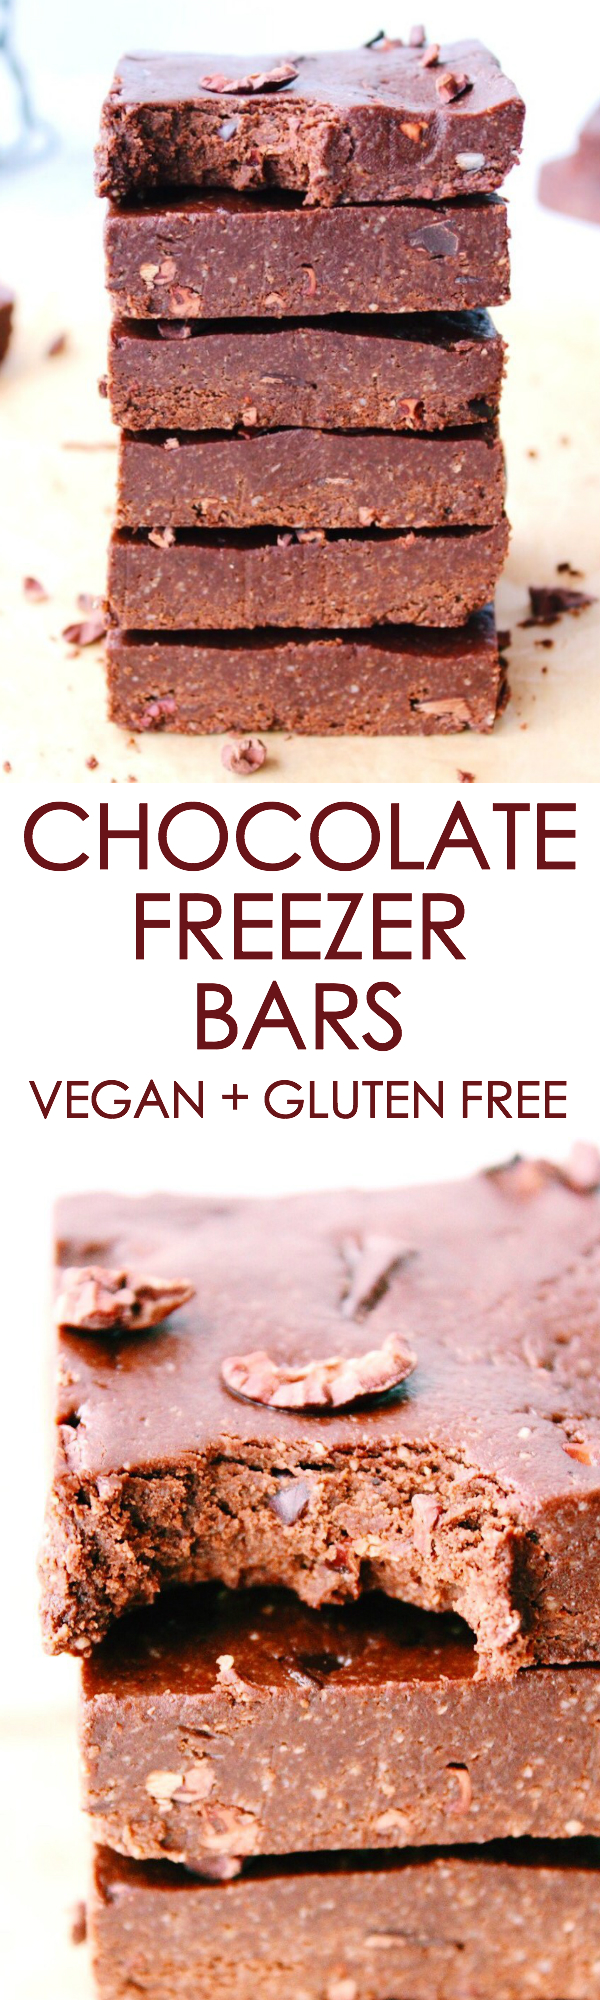 Chocolate Freezer Bars {vegan, gluten free}